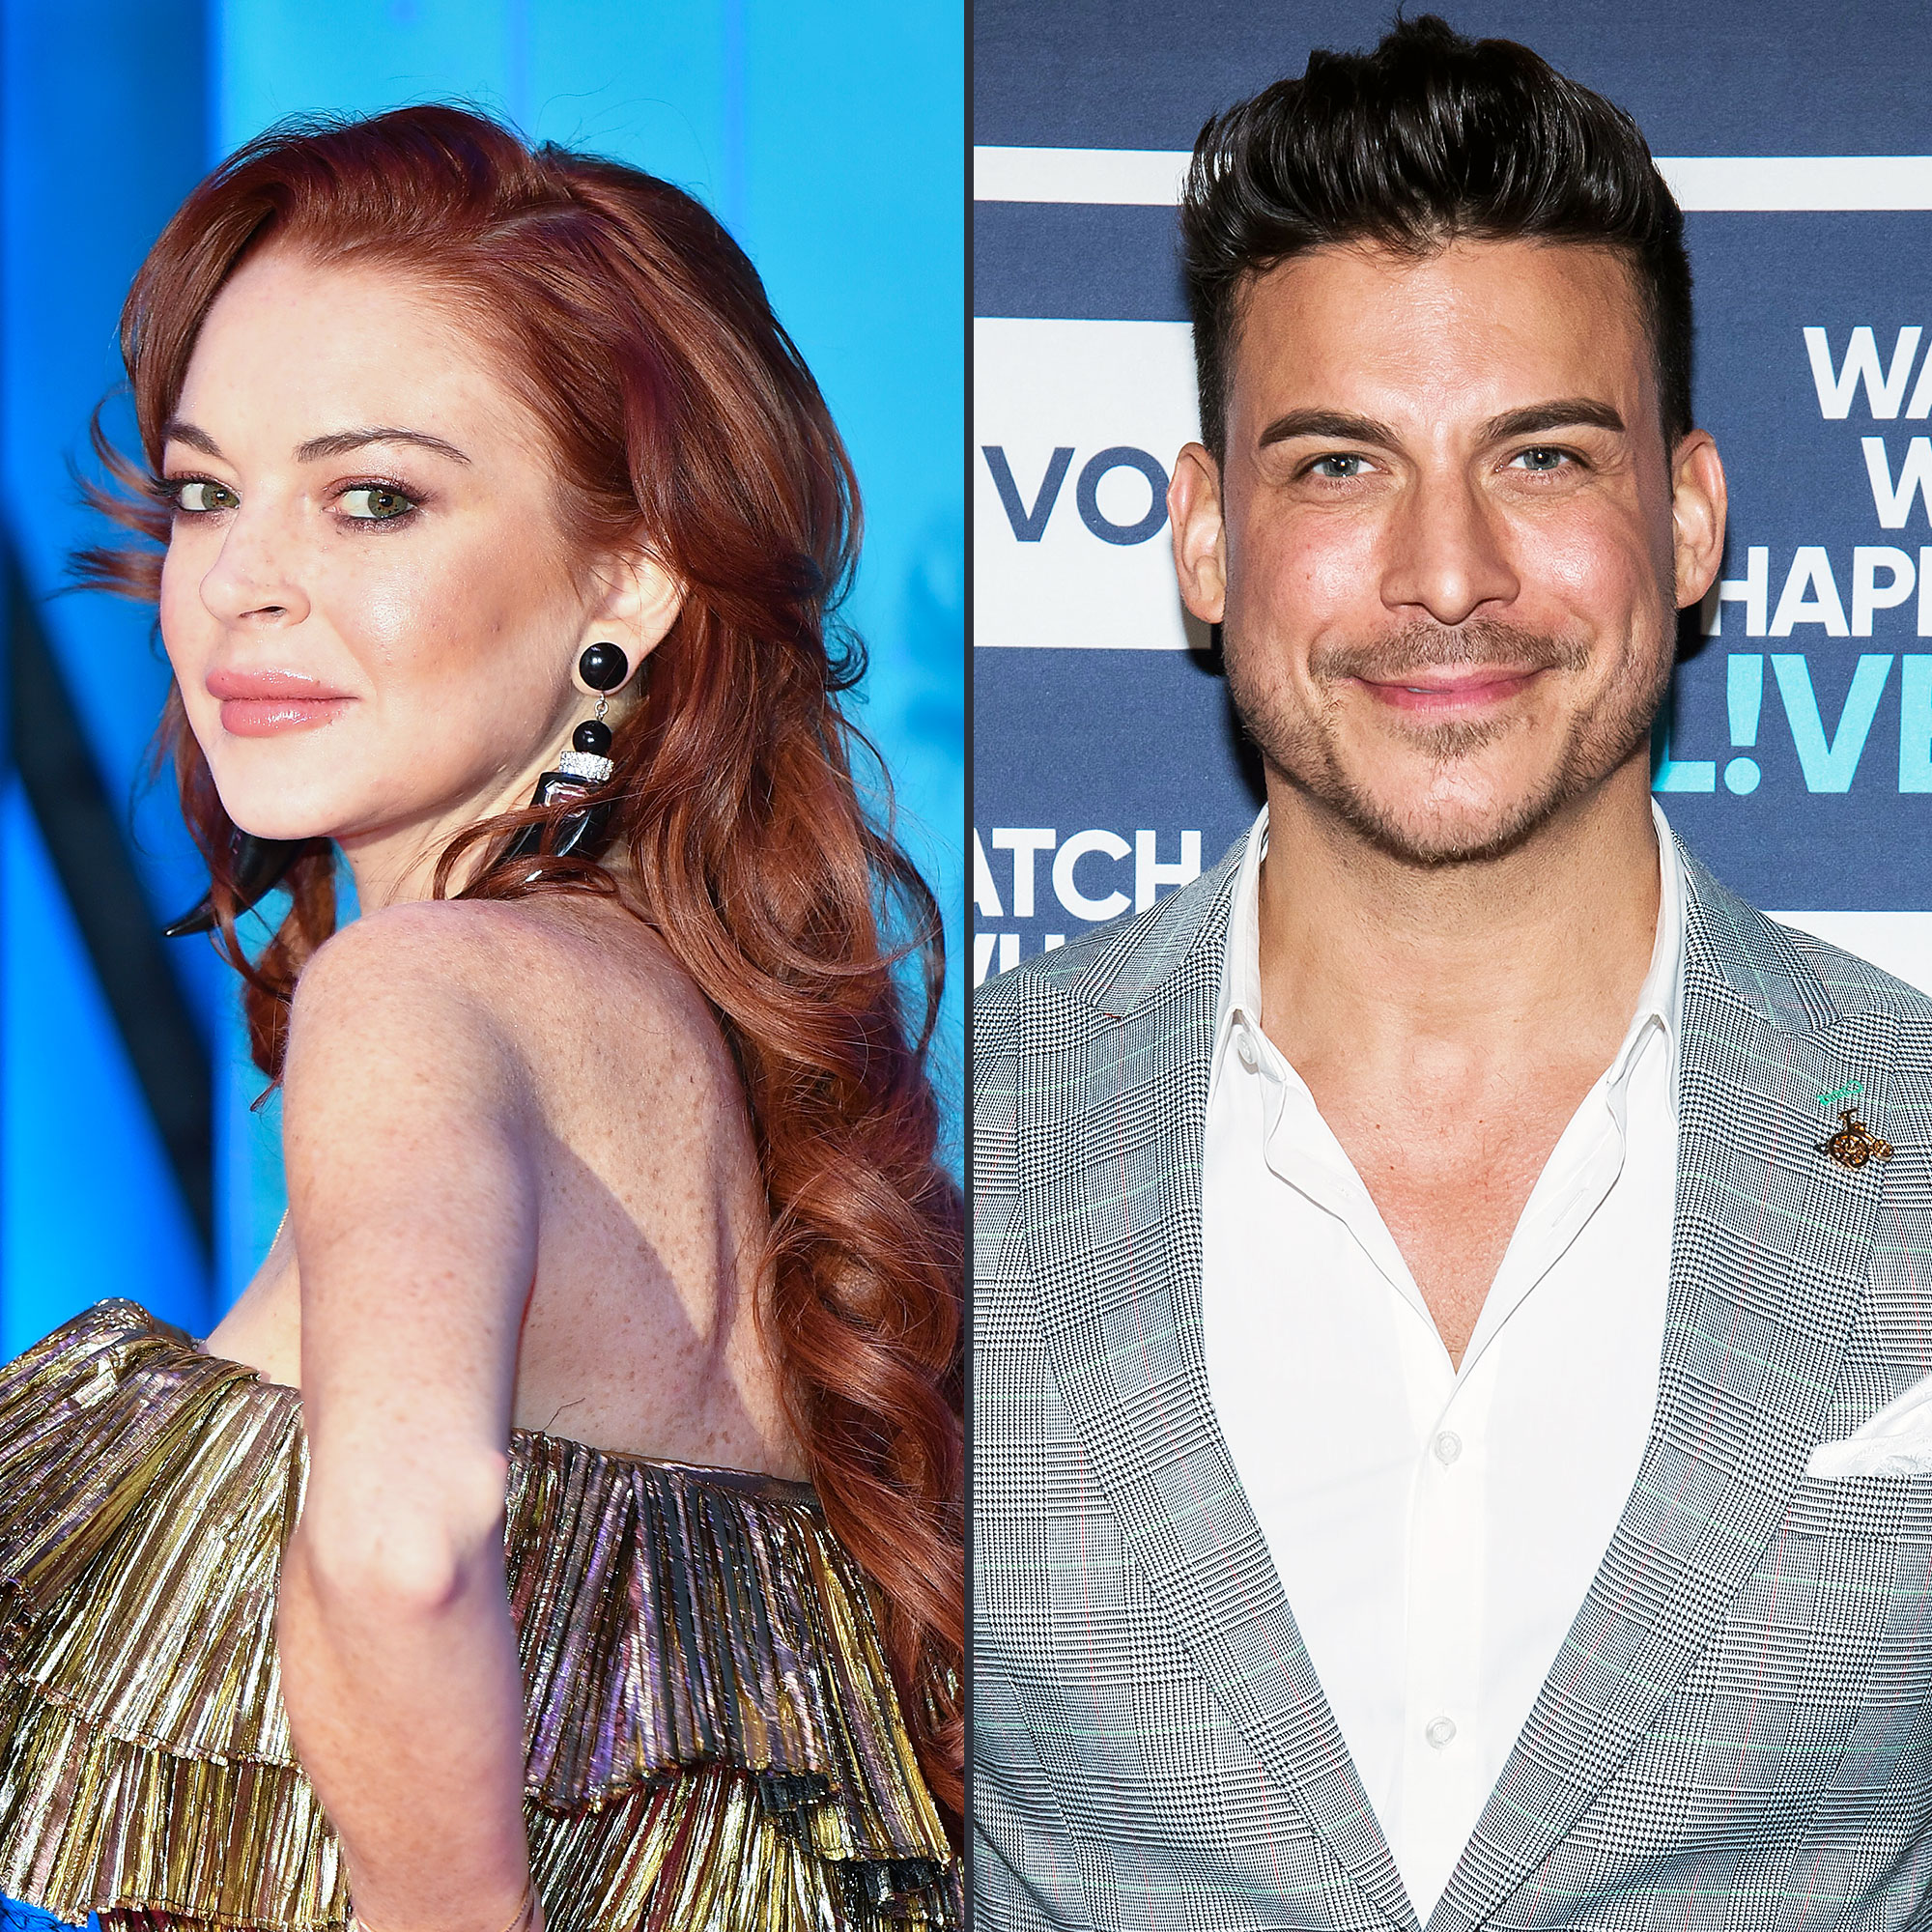 """lindsay-lohan-denies-hooking-up-with-jax-taylor-vanderpump-rules-star-calls-her-a-liar-on-twitter-after-she-claims-shes-never-met-him"""